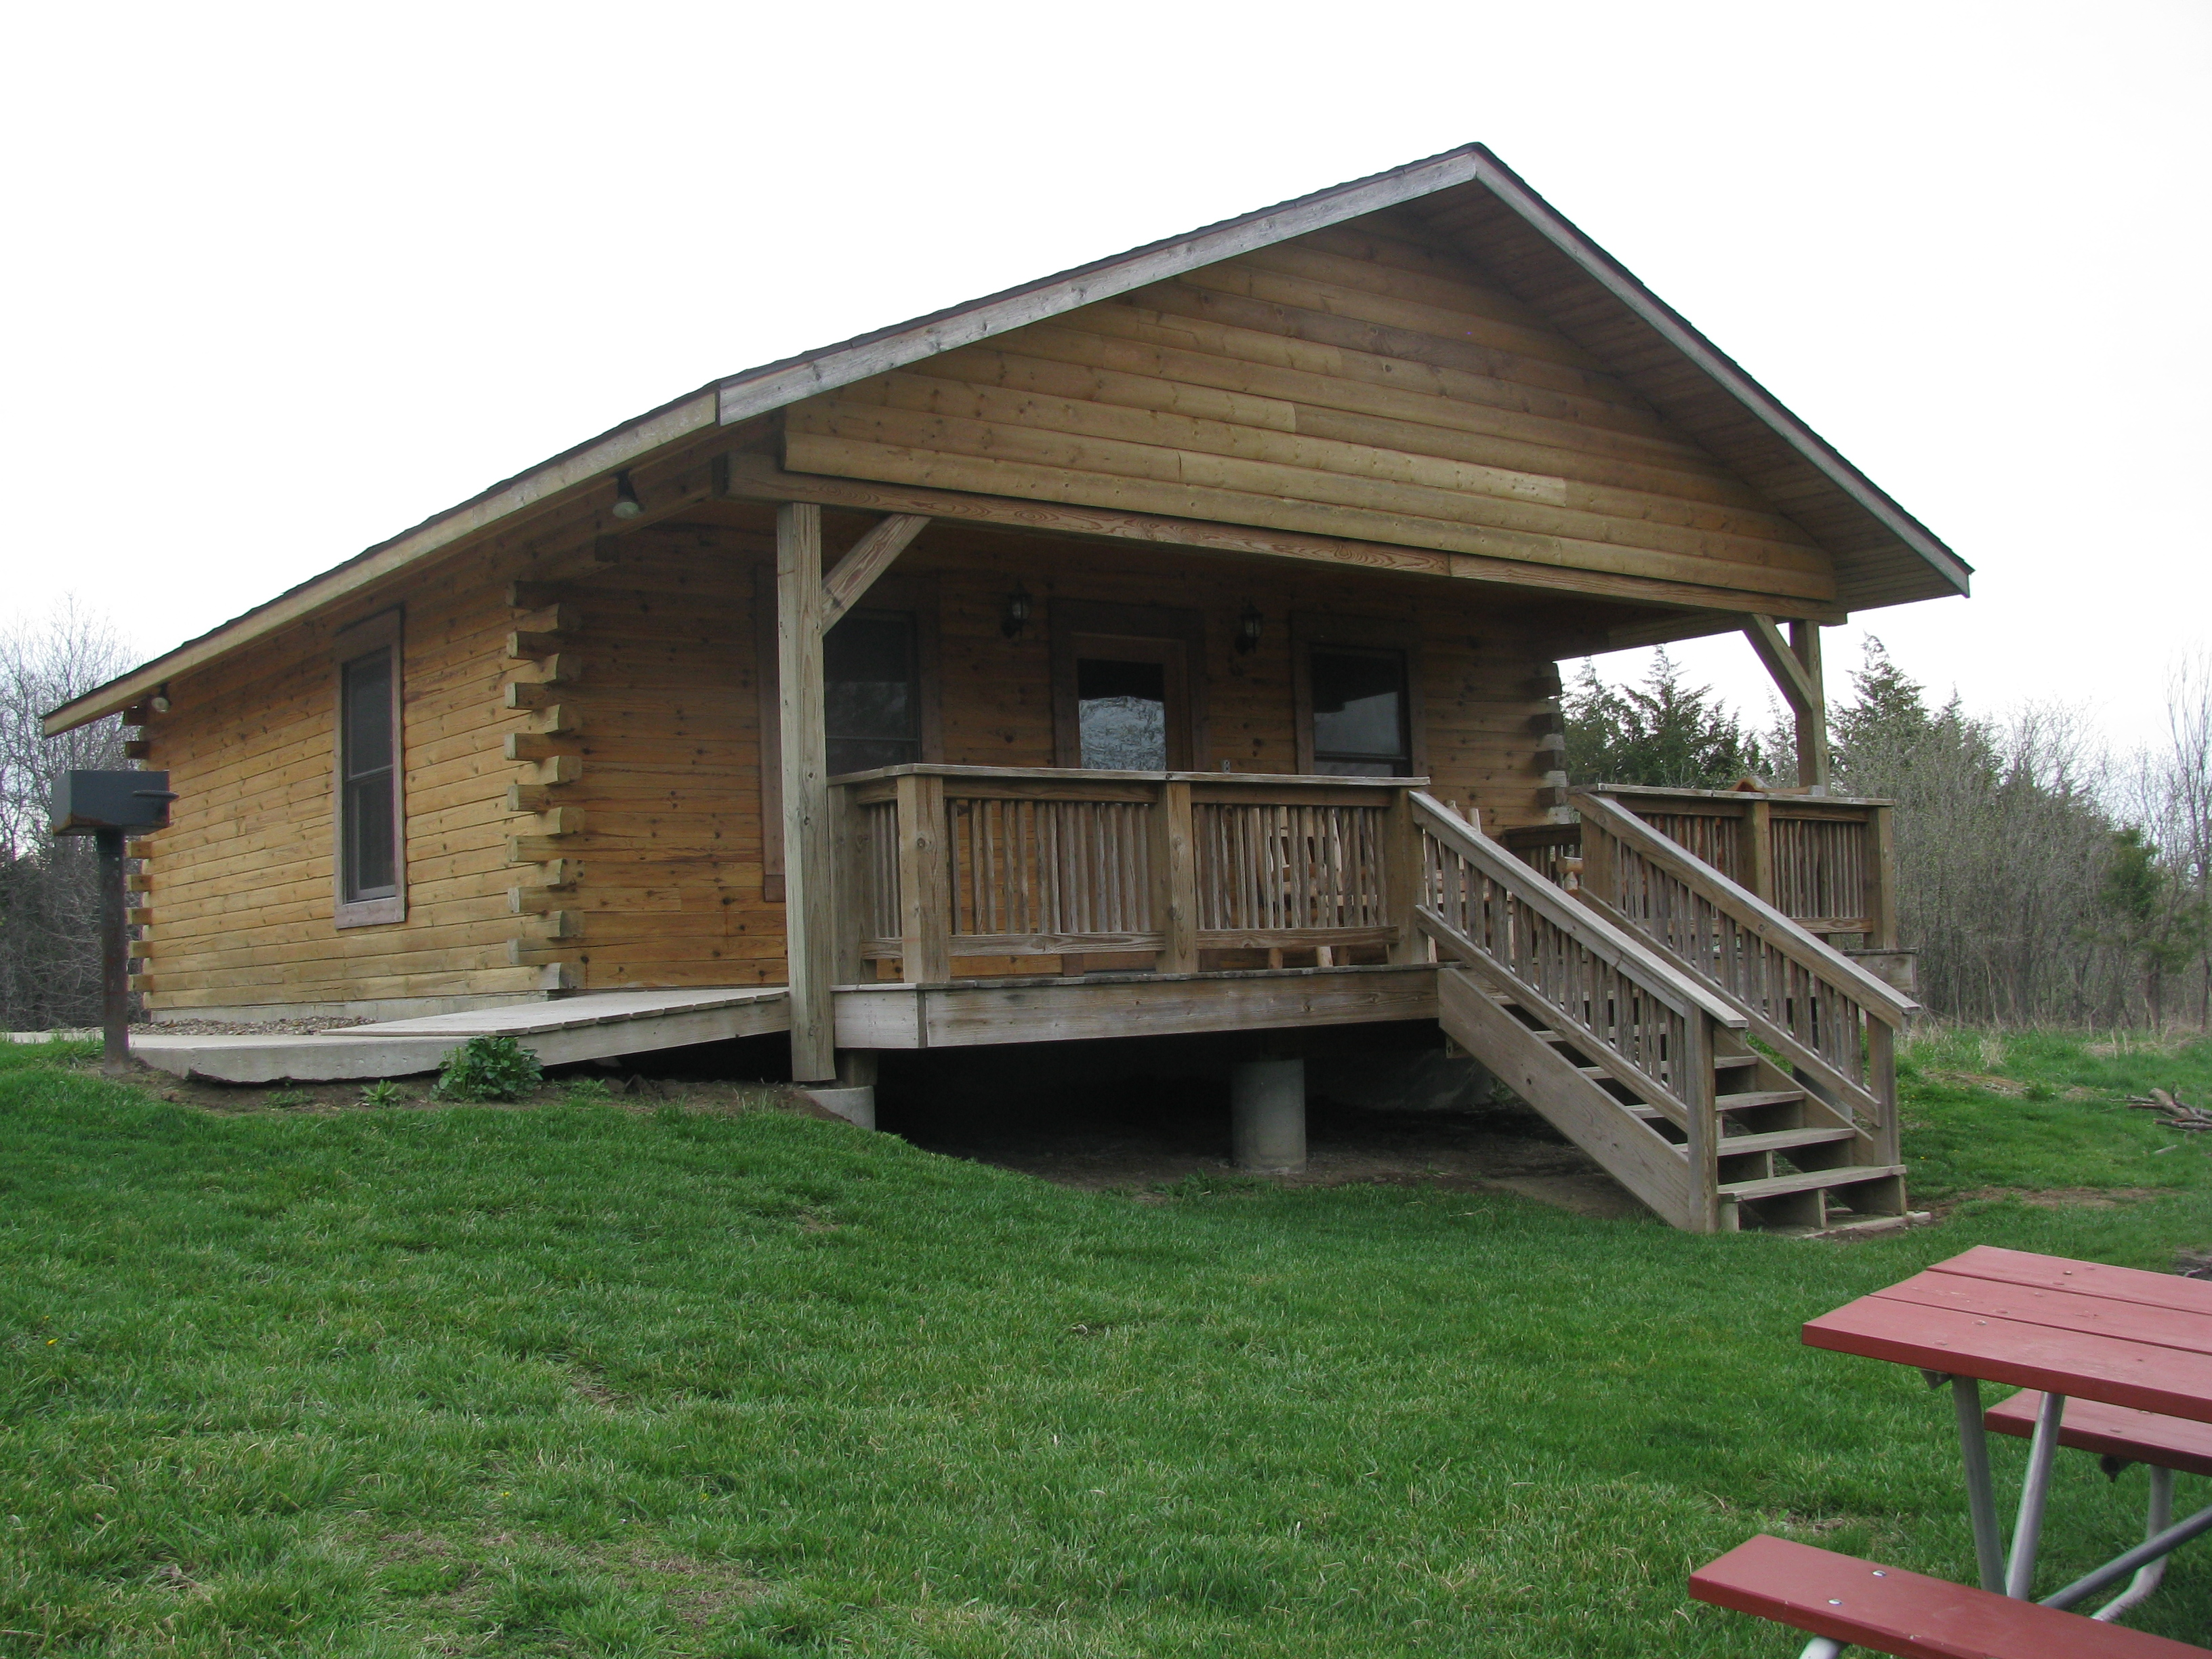 beaverdale franklin rent des to in home rental pin moines vacation the cabins dsm iowa